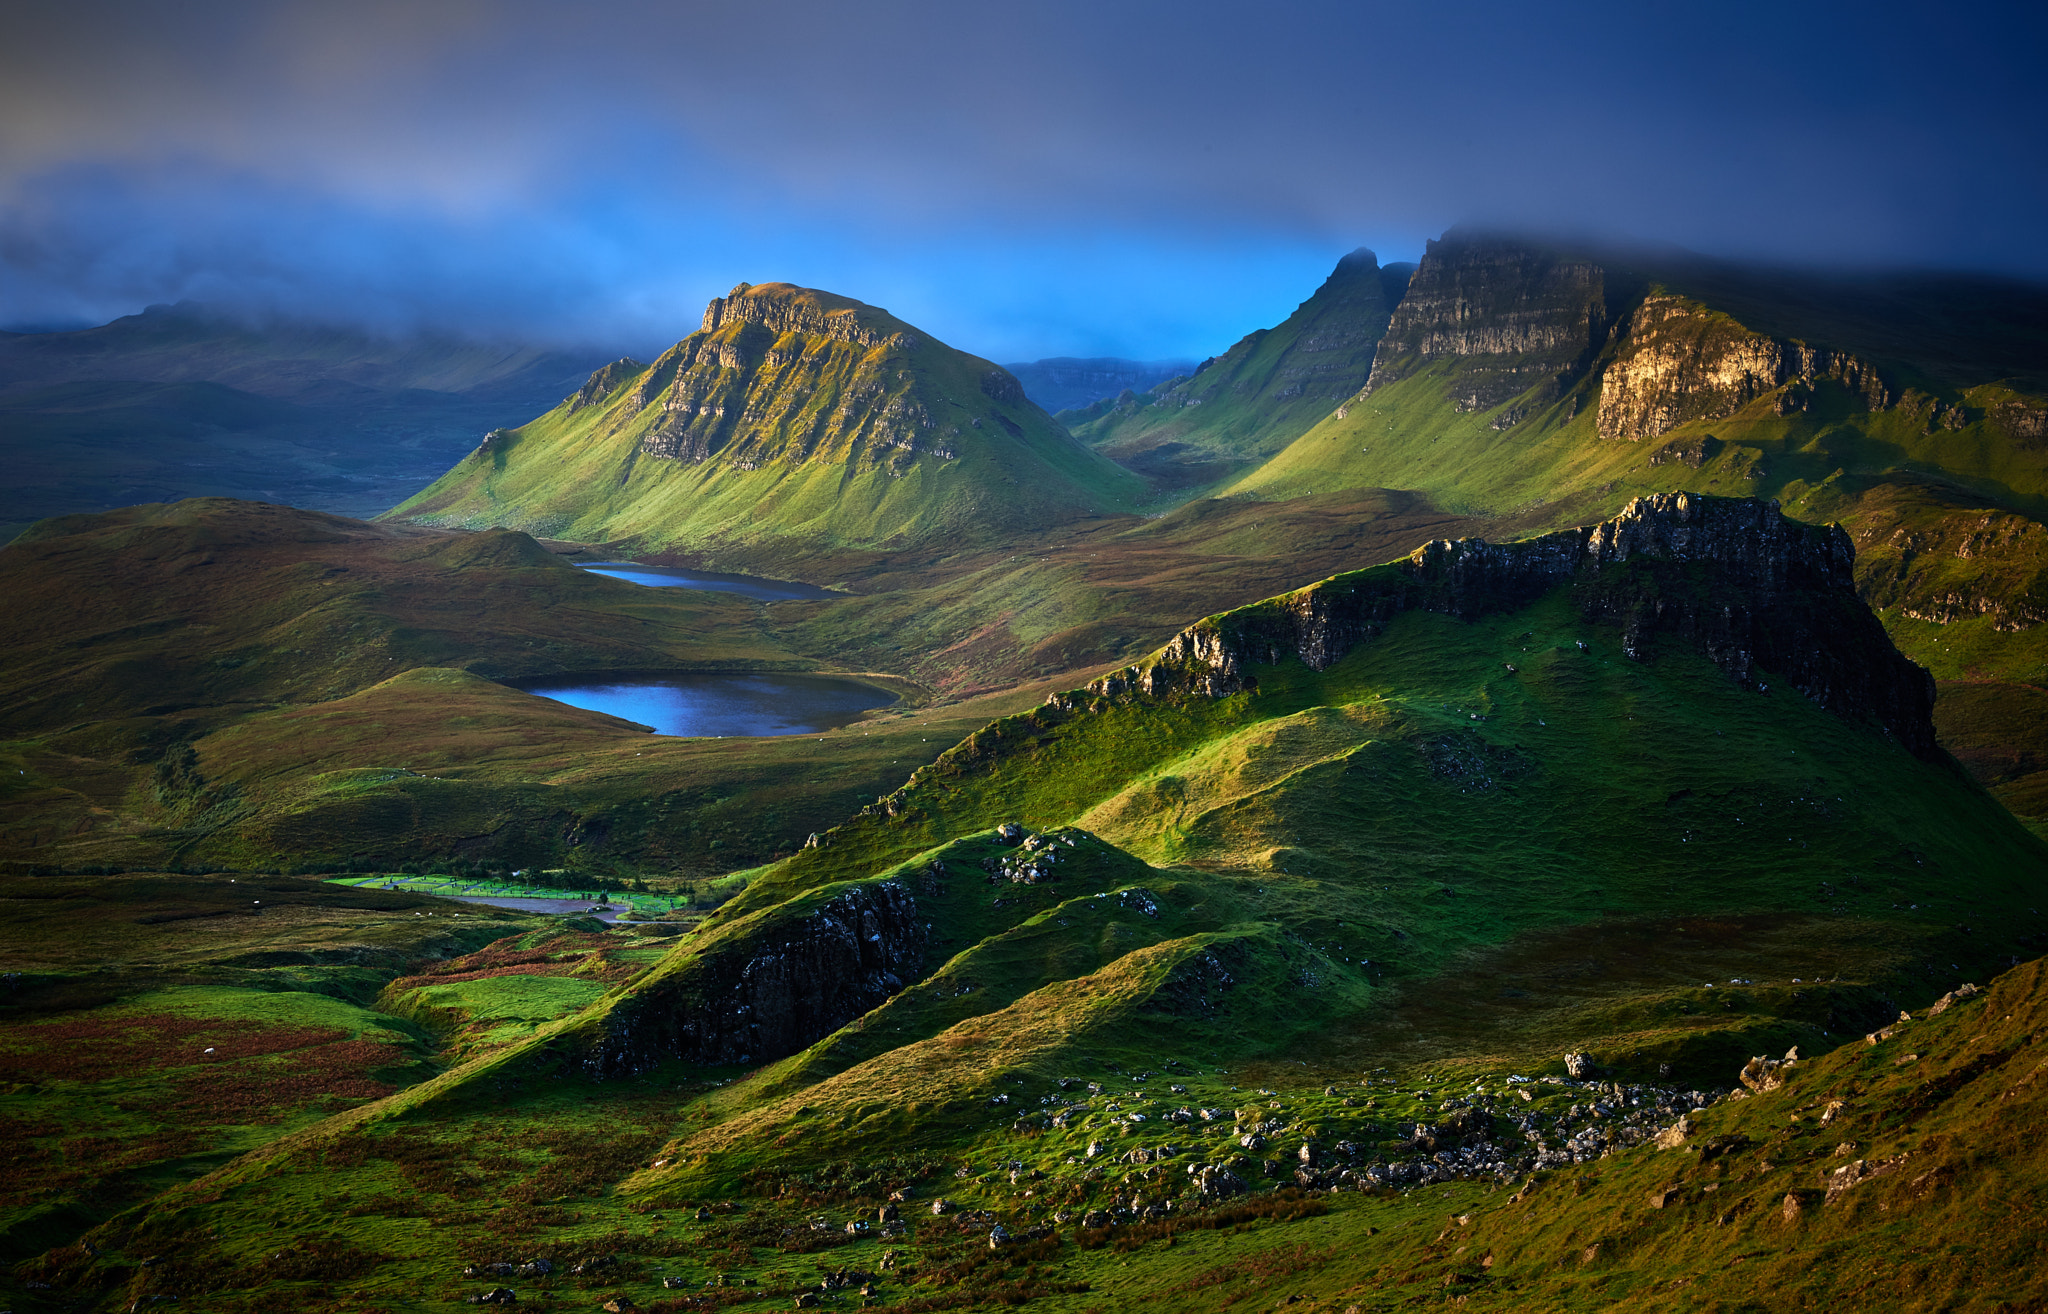 Sunrise at Quiraing by Tom Irving - Photo 87537673 - 500px